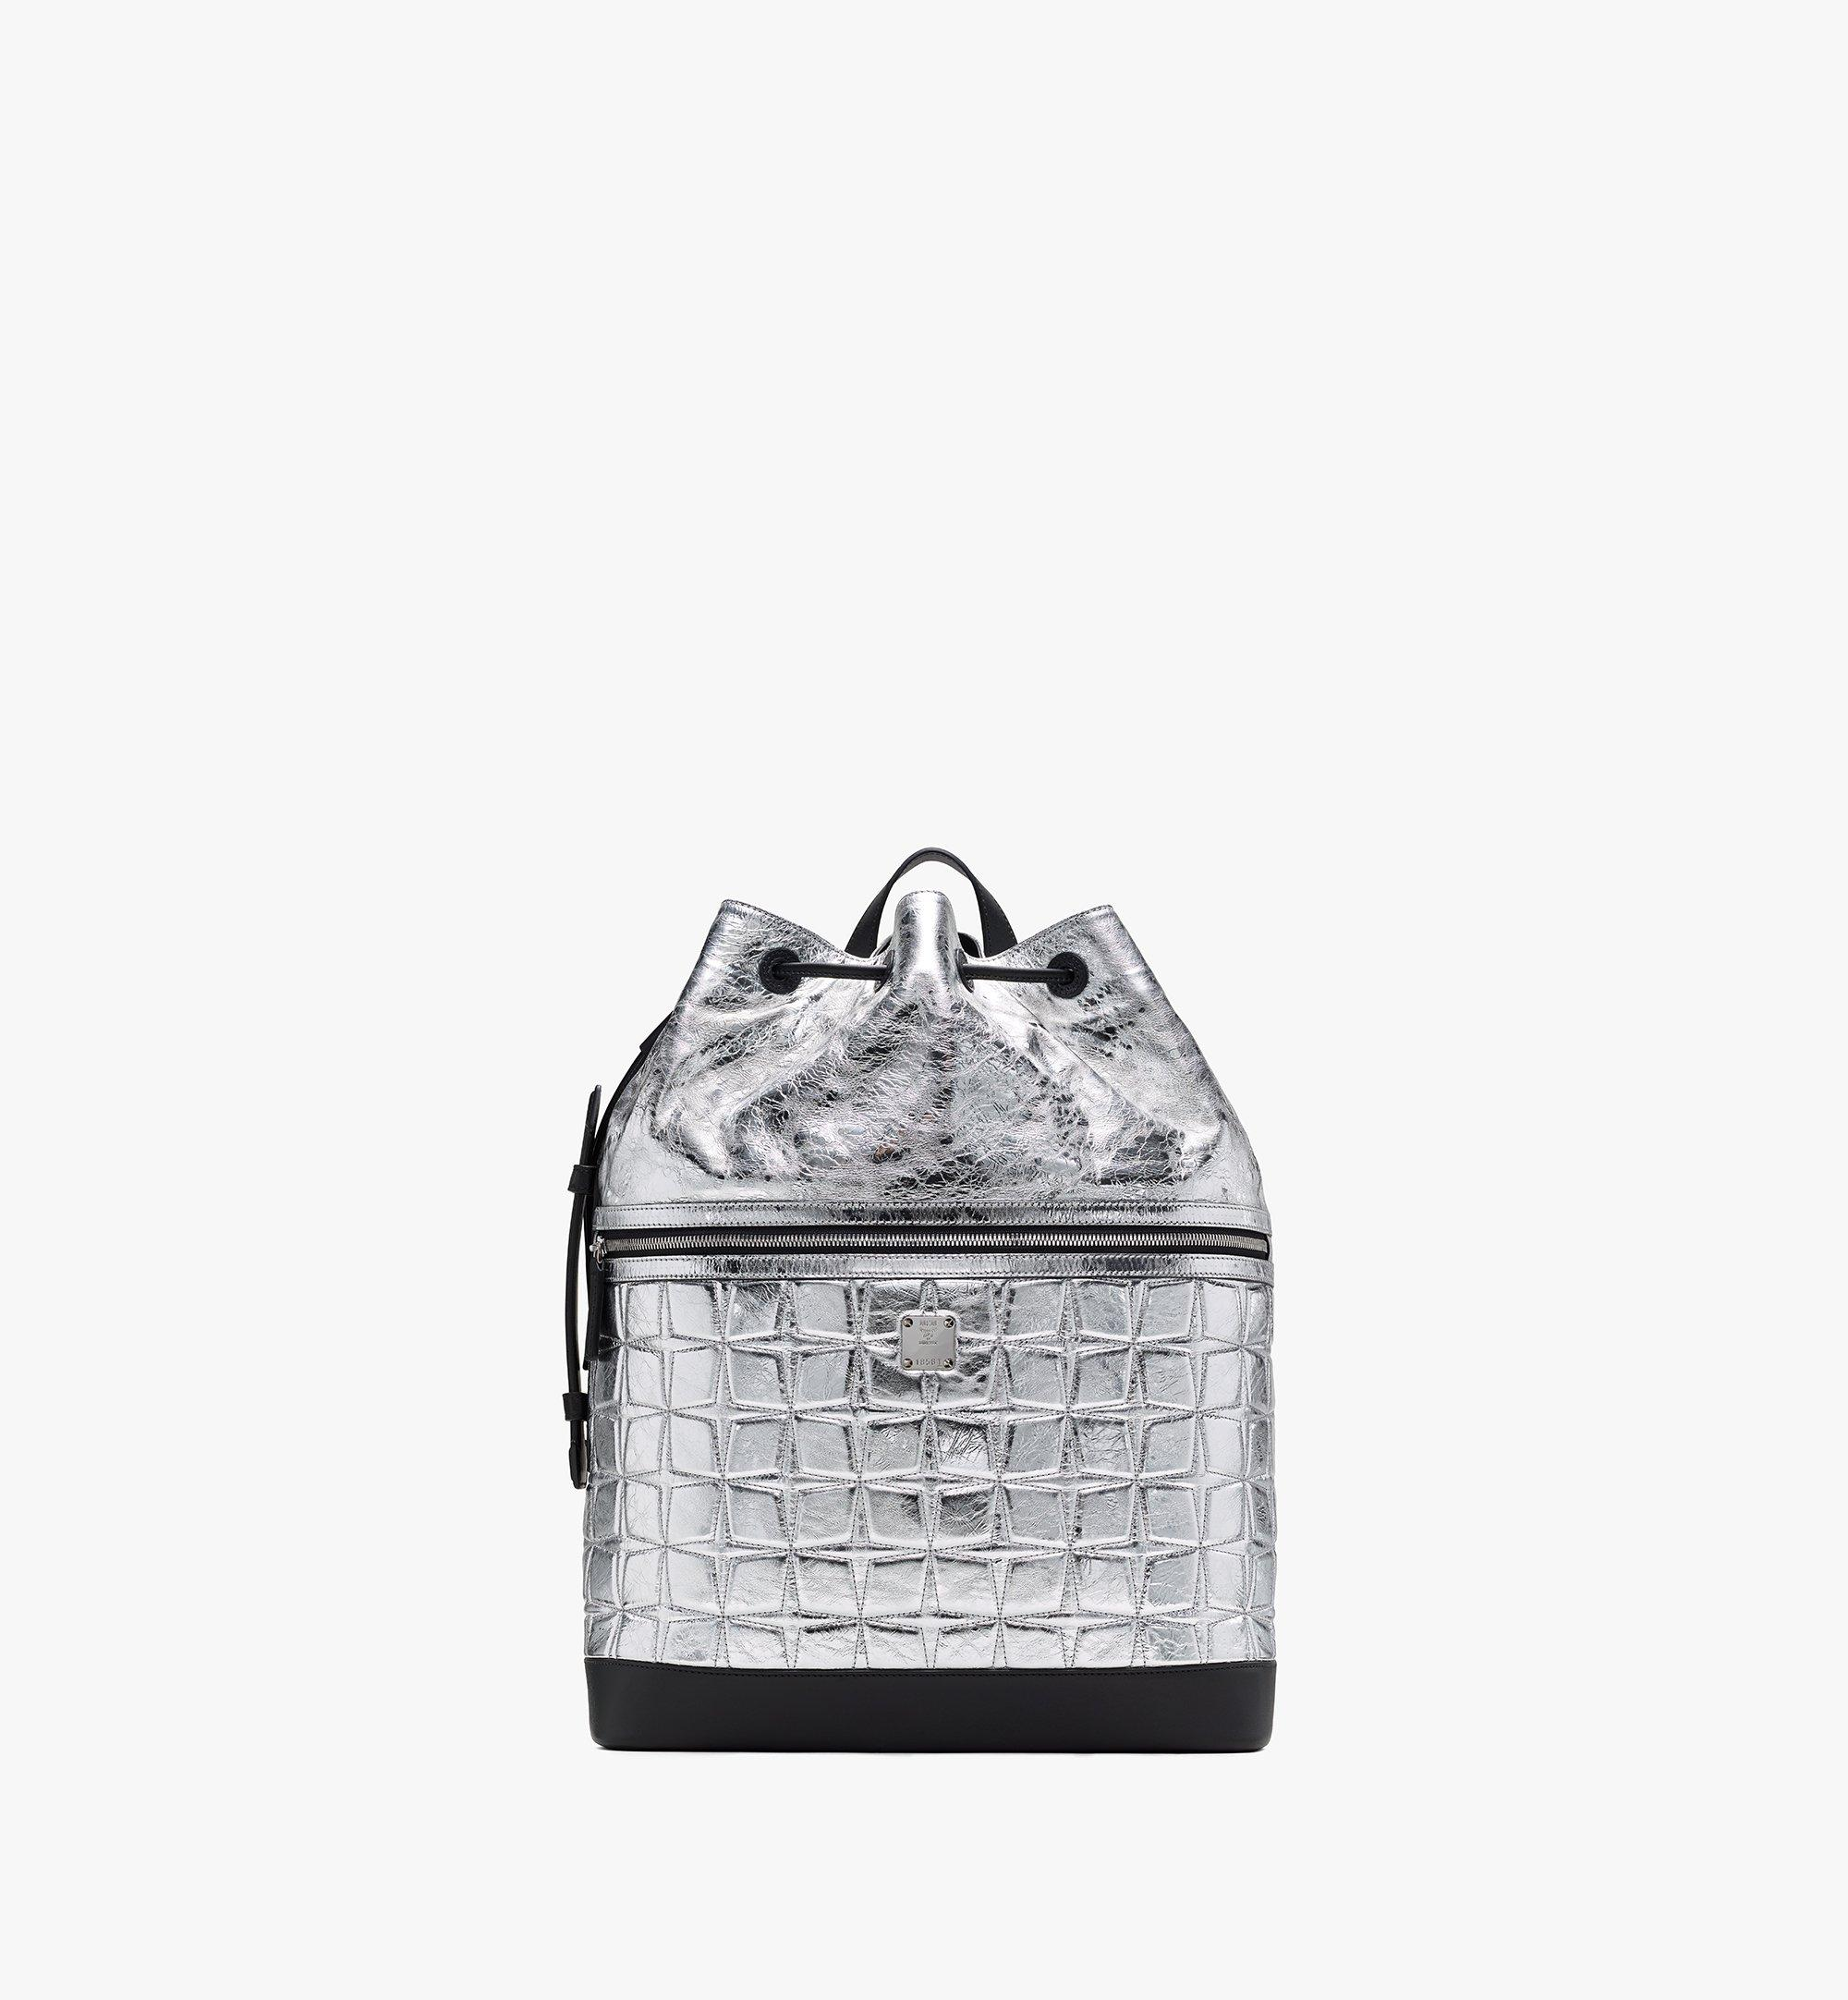 MCM Klassik Drawstring Backpack in Quilted Diamond Leather Silver MMDASKC03SA001 Alternate View 1